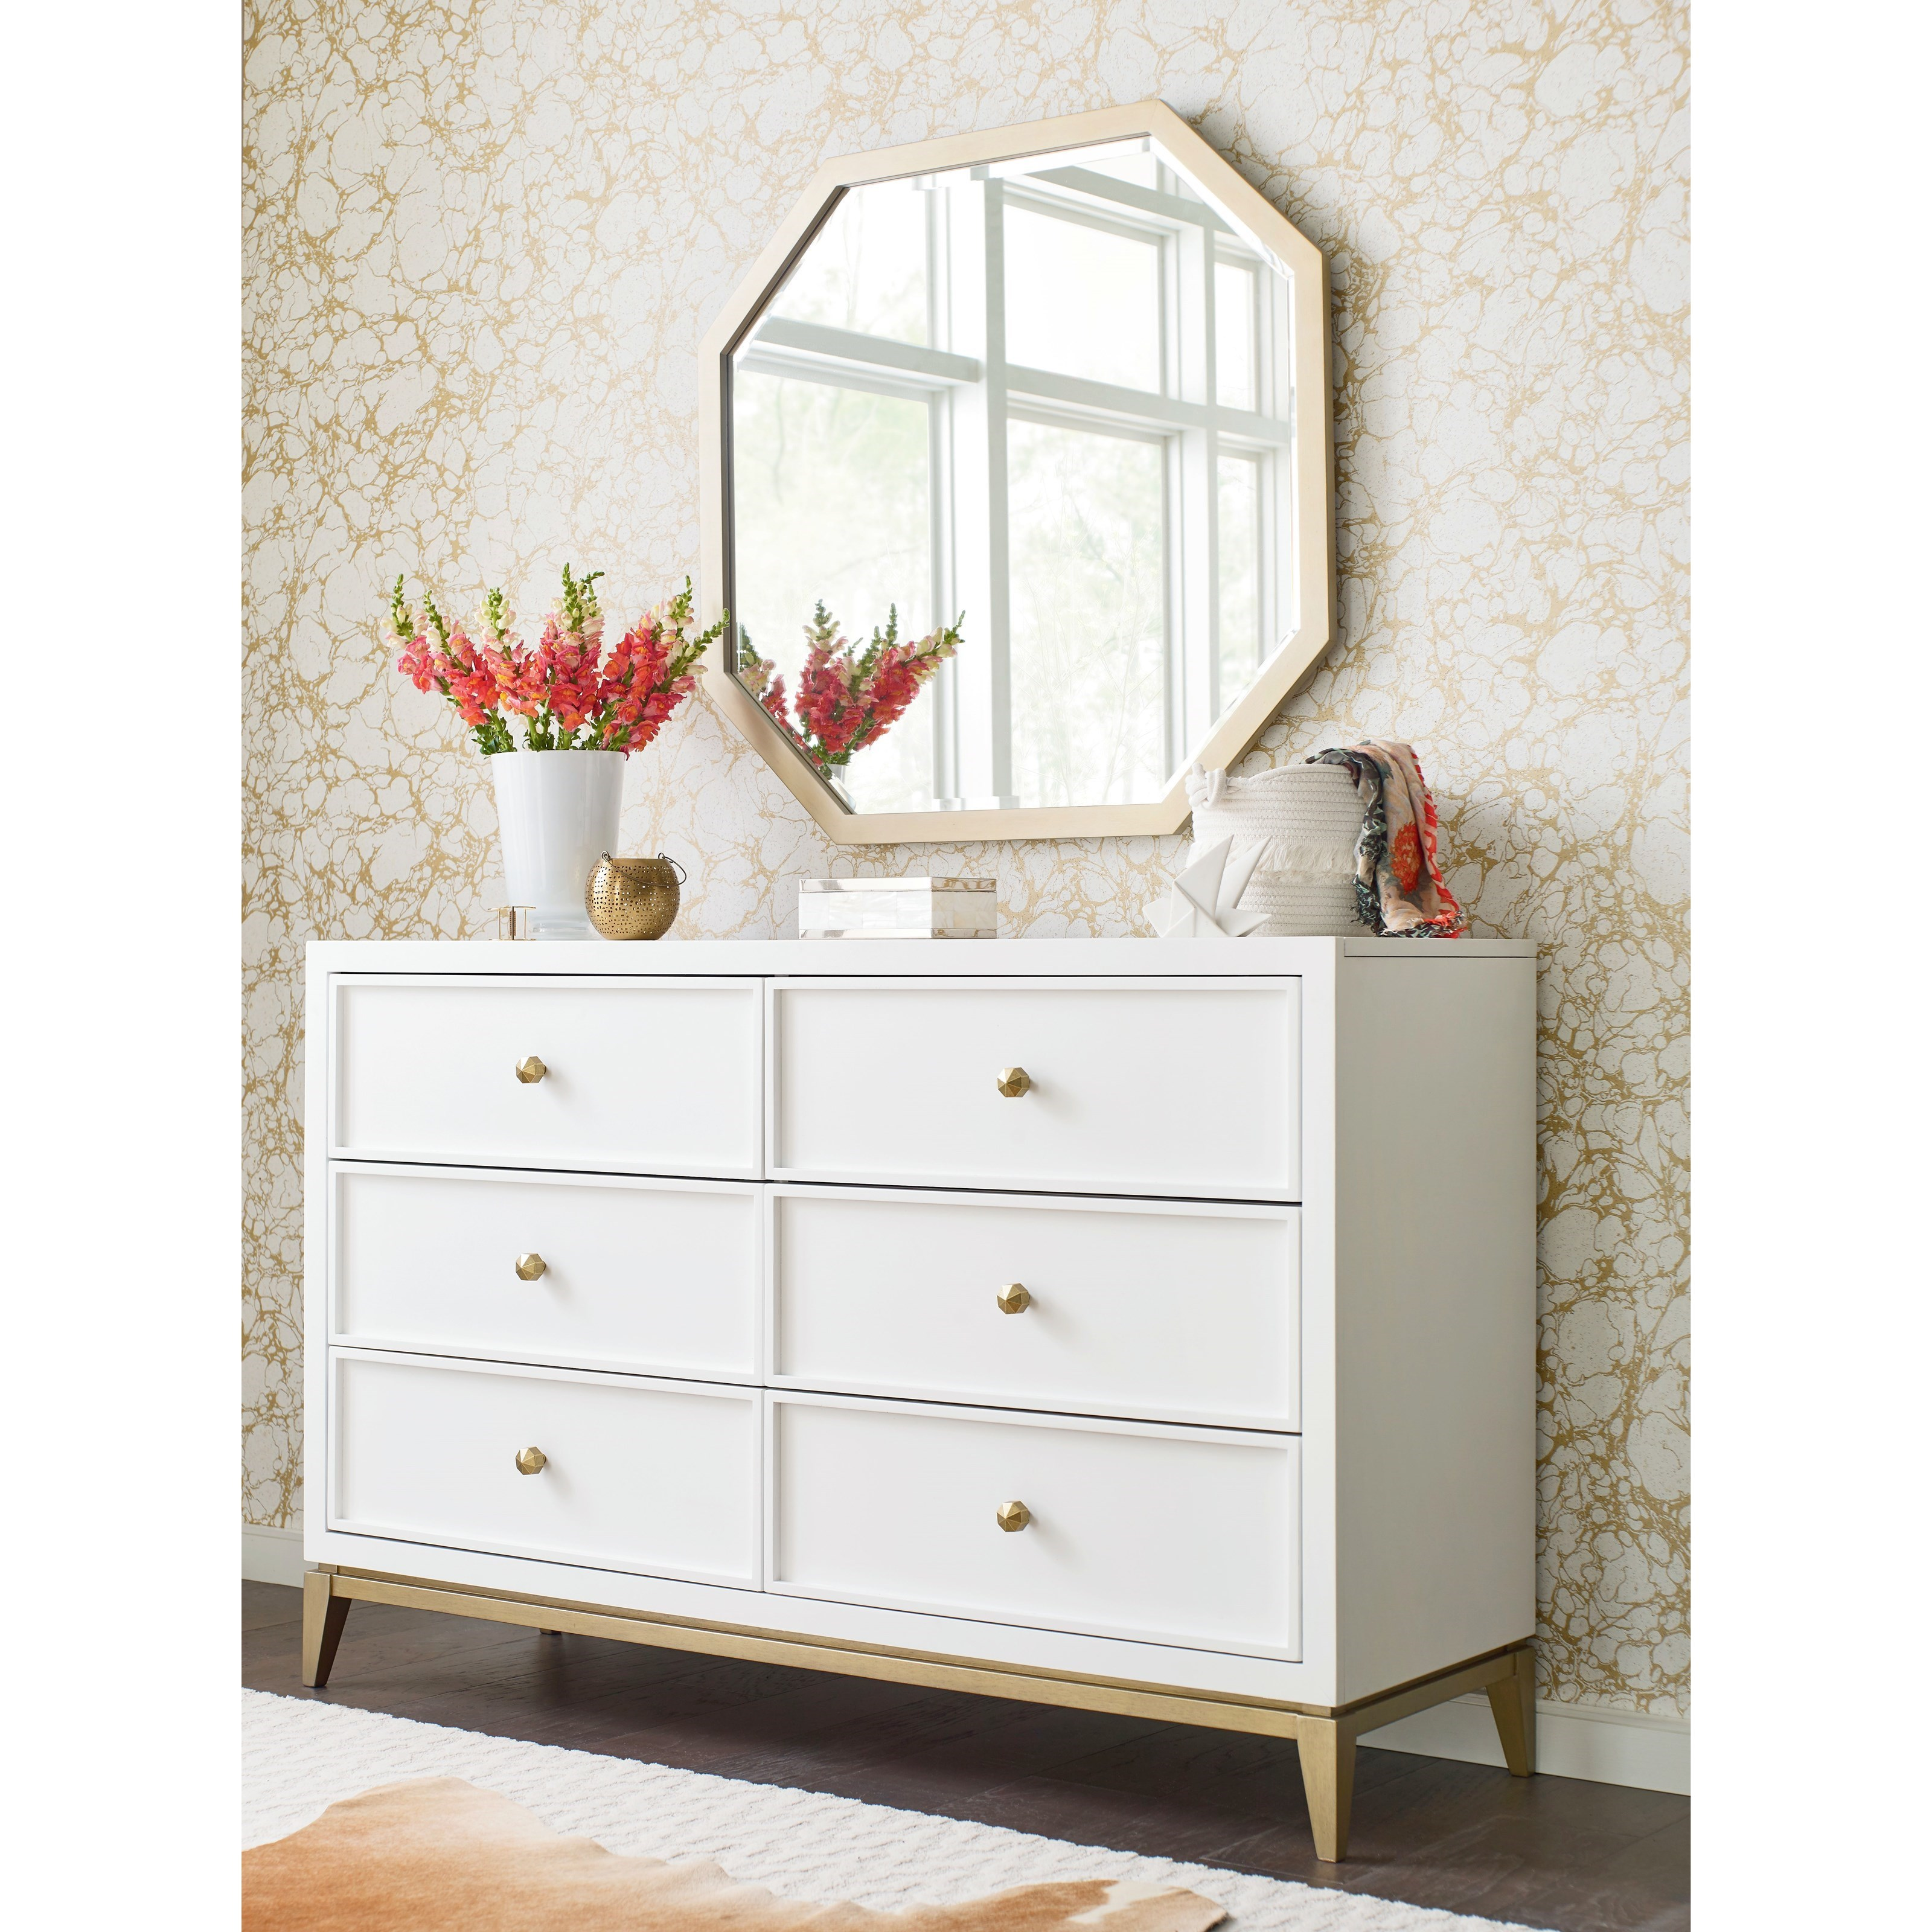 Chelsea Dresser and Mirror Set by Rachael Ray Home by Legacy Classic at Stoney Creek Furniture